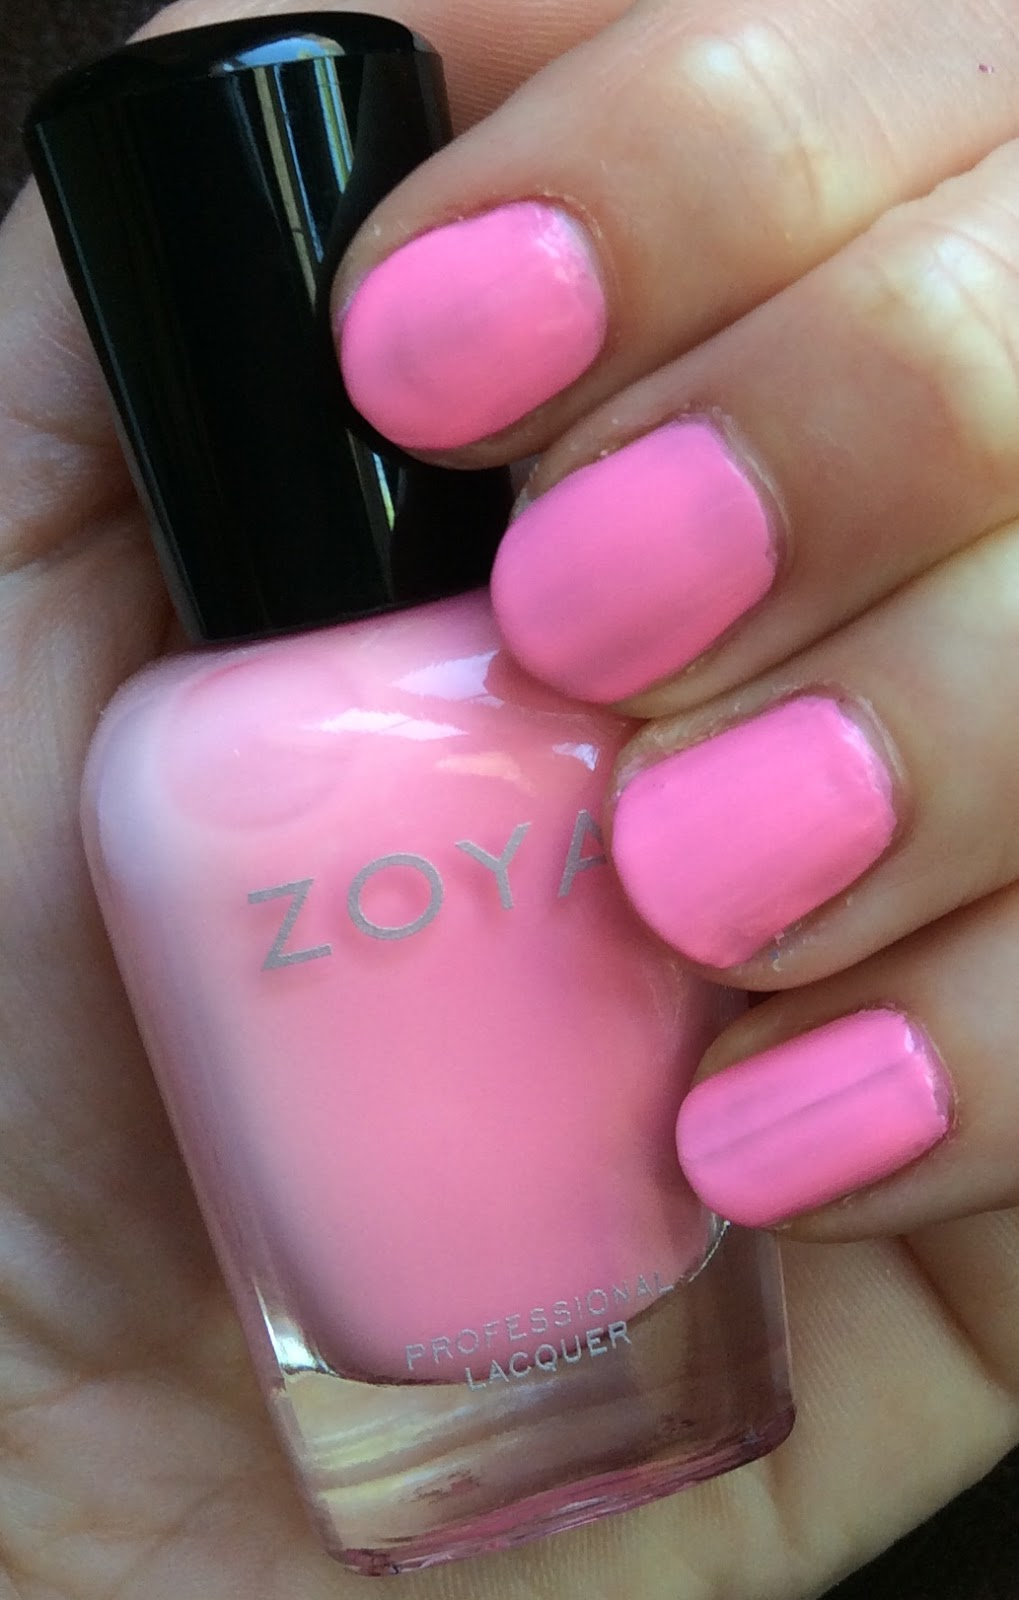 The Beauty Of Life Zoya Summer 2014 Tickled Collection Swatches